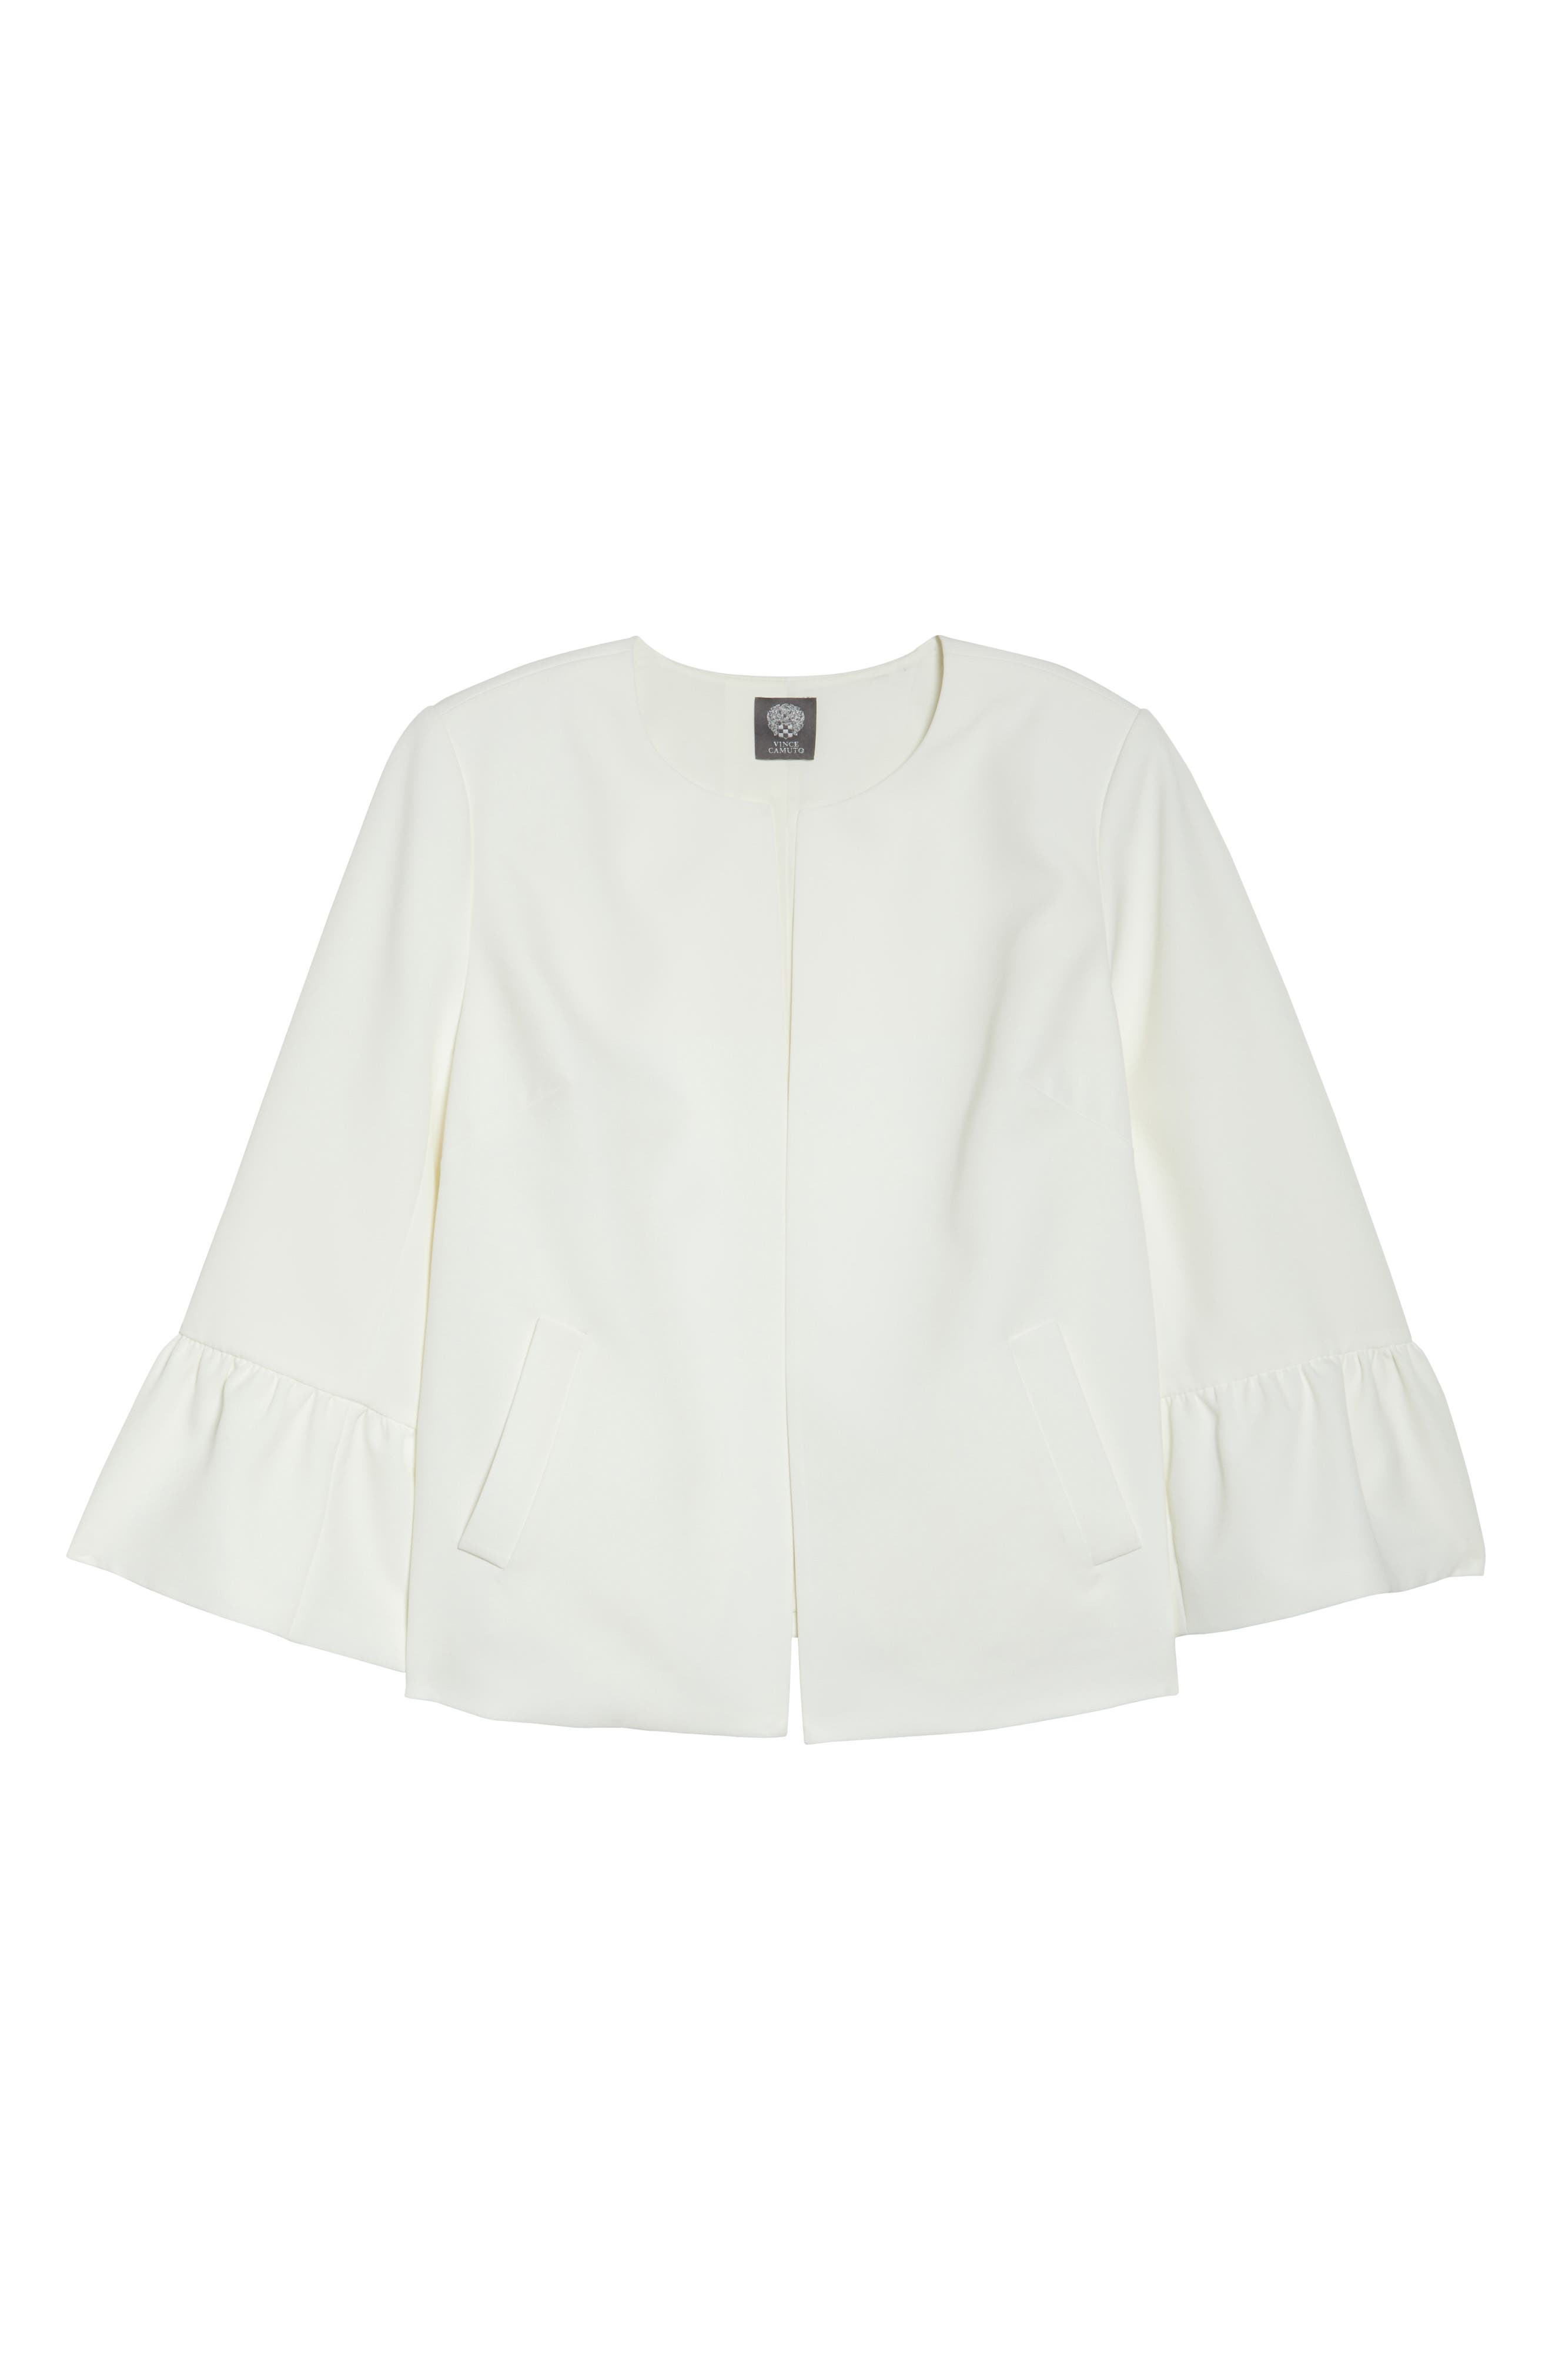 Ruffle Sleeve Jacket,                             Alternate thumbnail 5, color,                             903